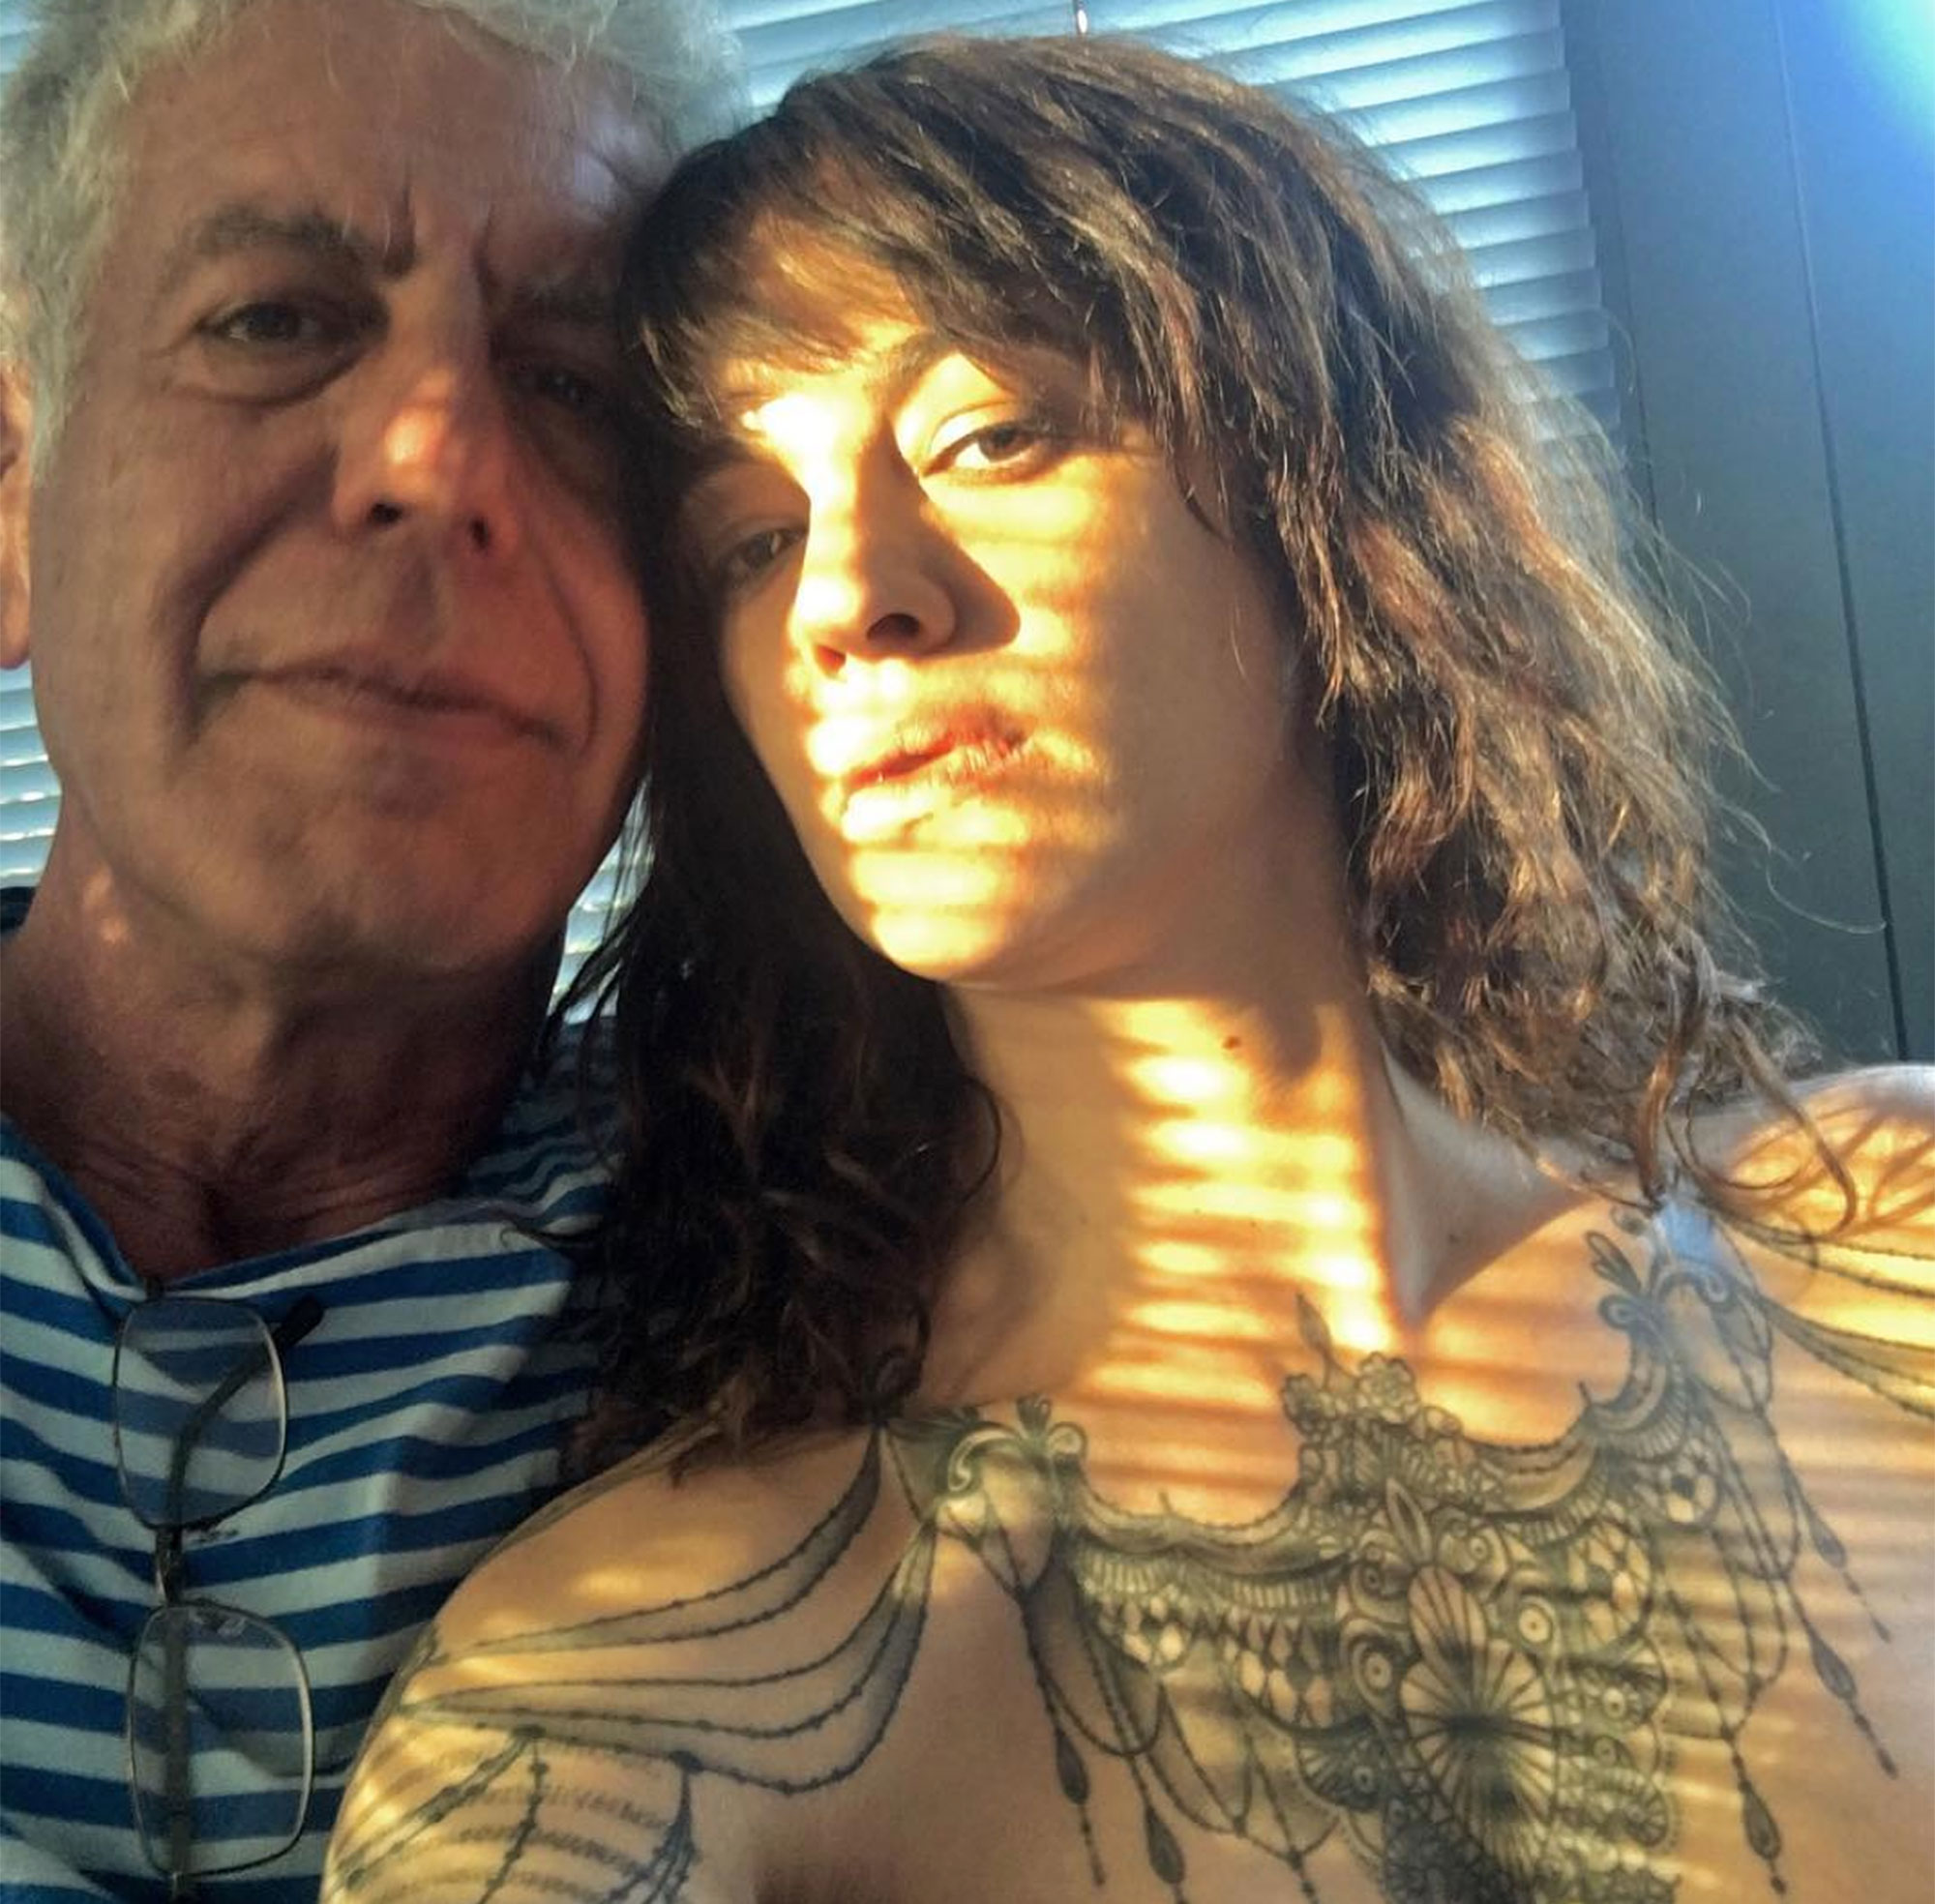 anthony-bourdain-asia-argento-1.jpg